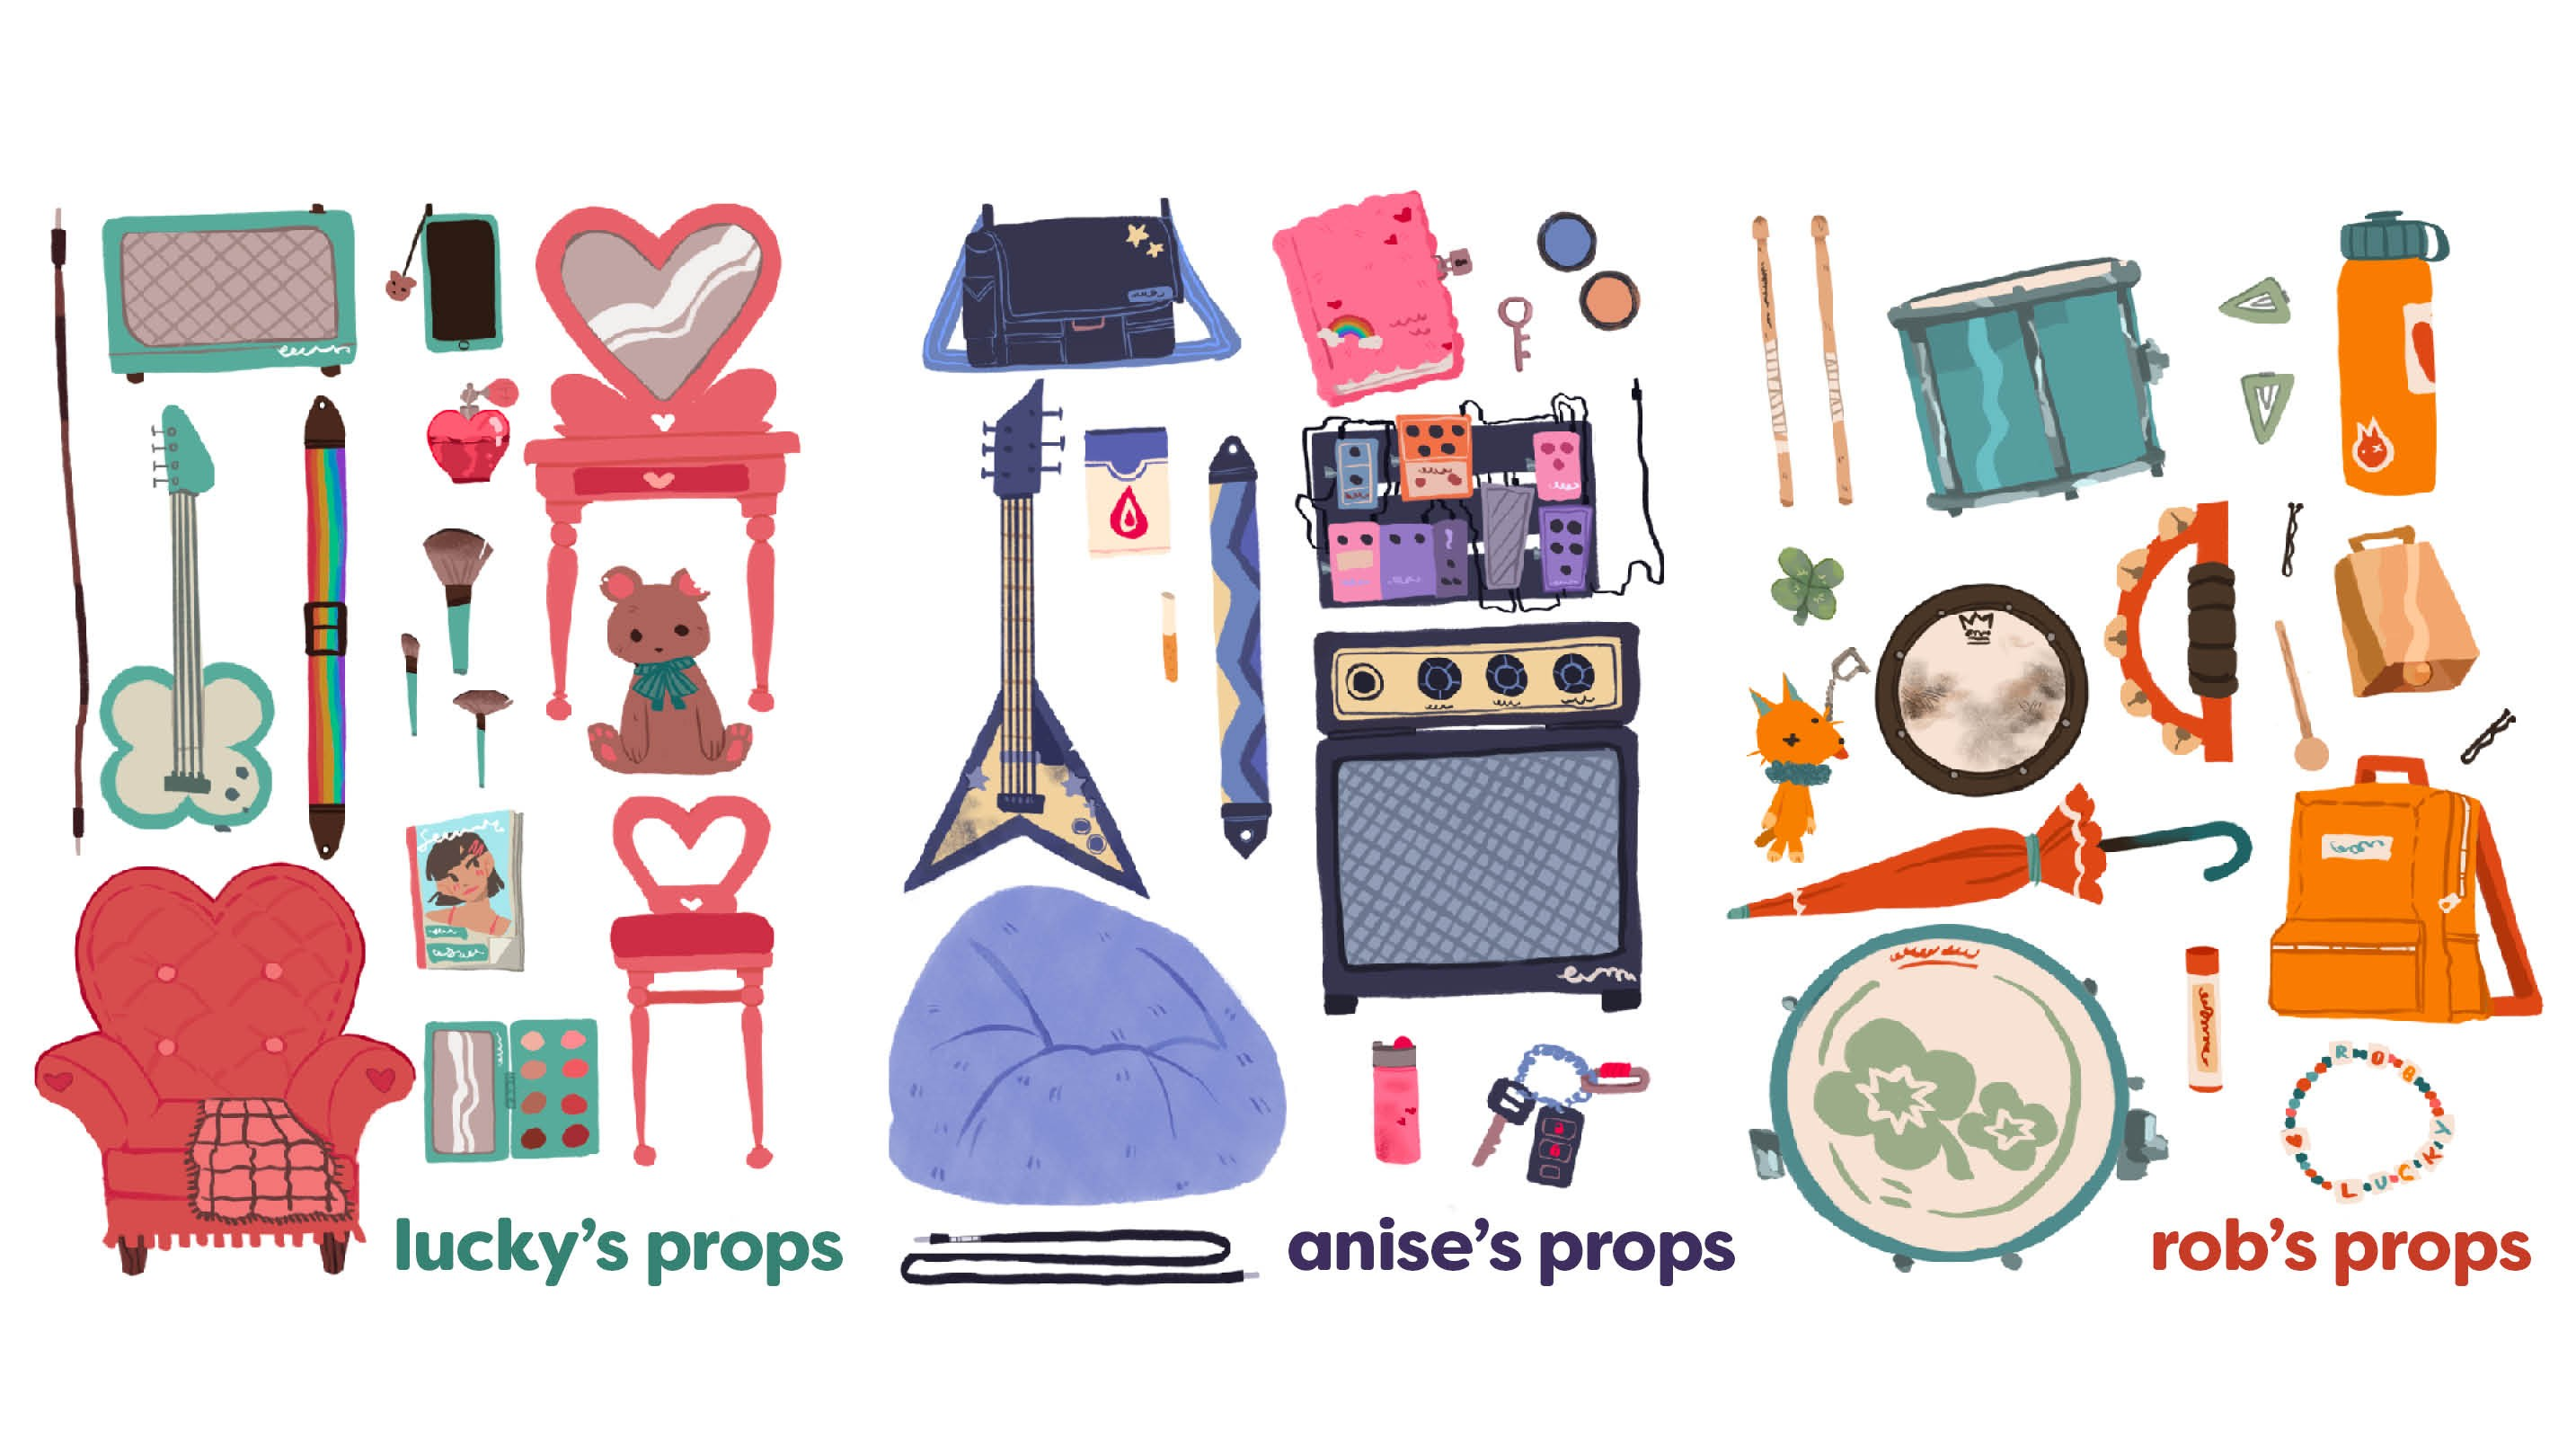 Three separate illustrations of various props for each band member. Lucky's props are on the left and feature cute themed objects like heart shaped furniture, a teddy bear, and makeup products. Most importantly, a bass guitar with a clover shaped body is